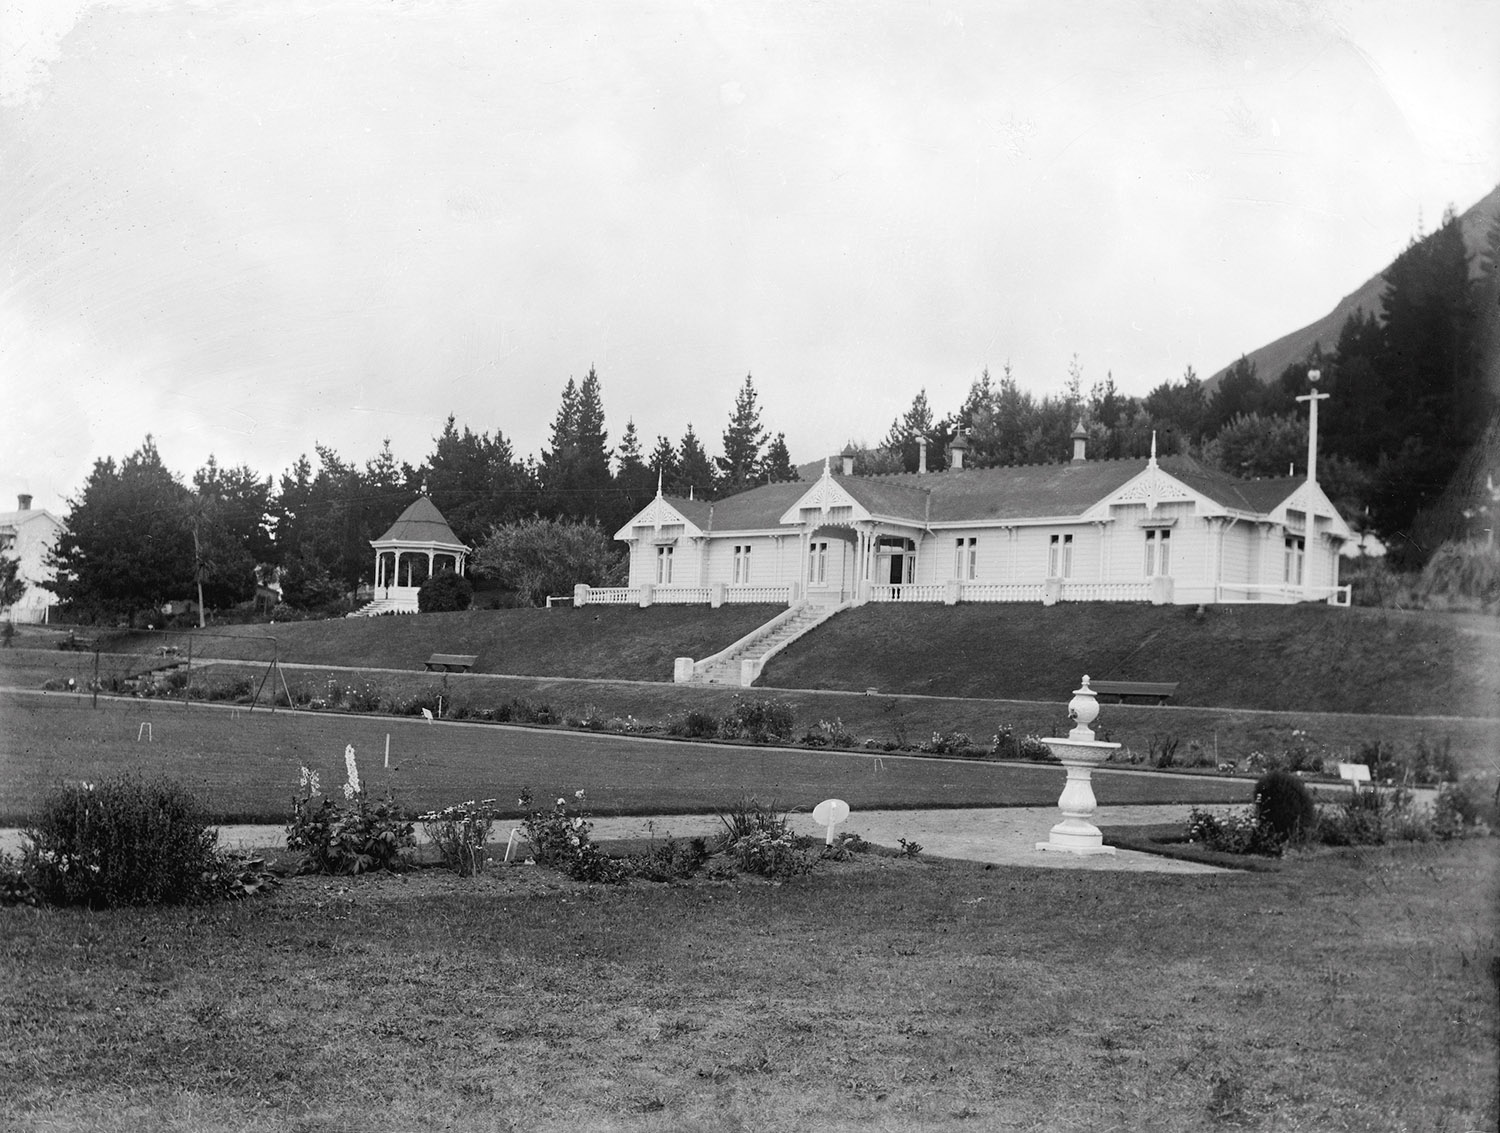 Cadman Bath House, Te Aroha, New Zealand, circa 1907-1911. Lemuel Lyes Collection.